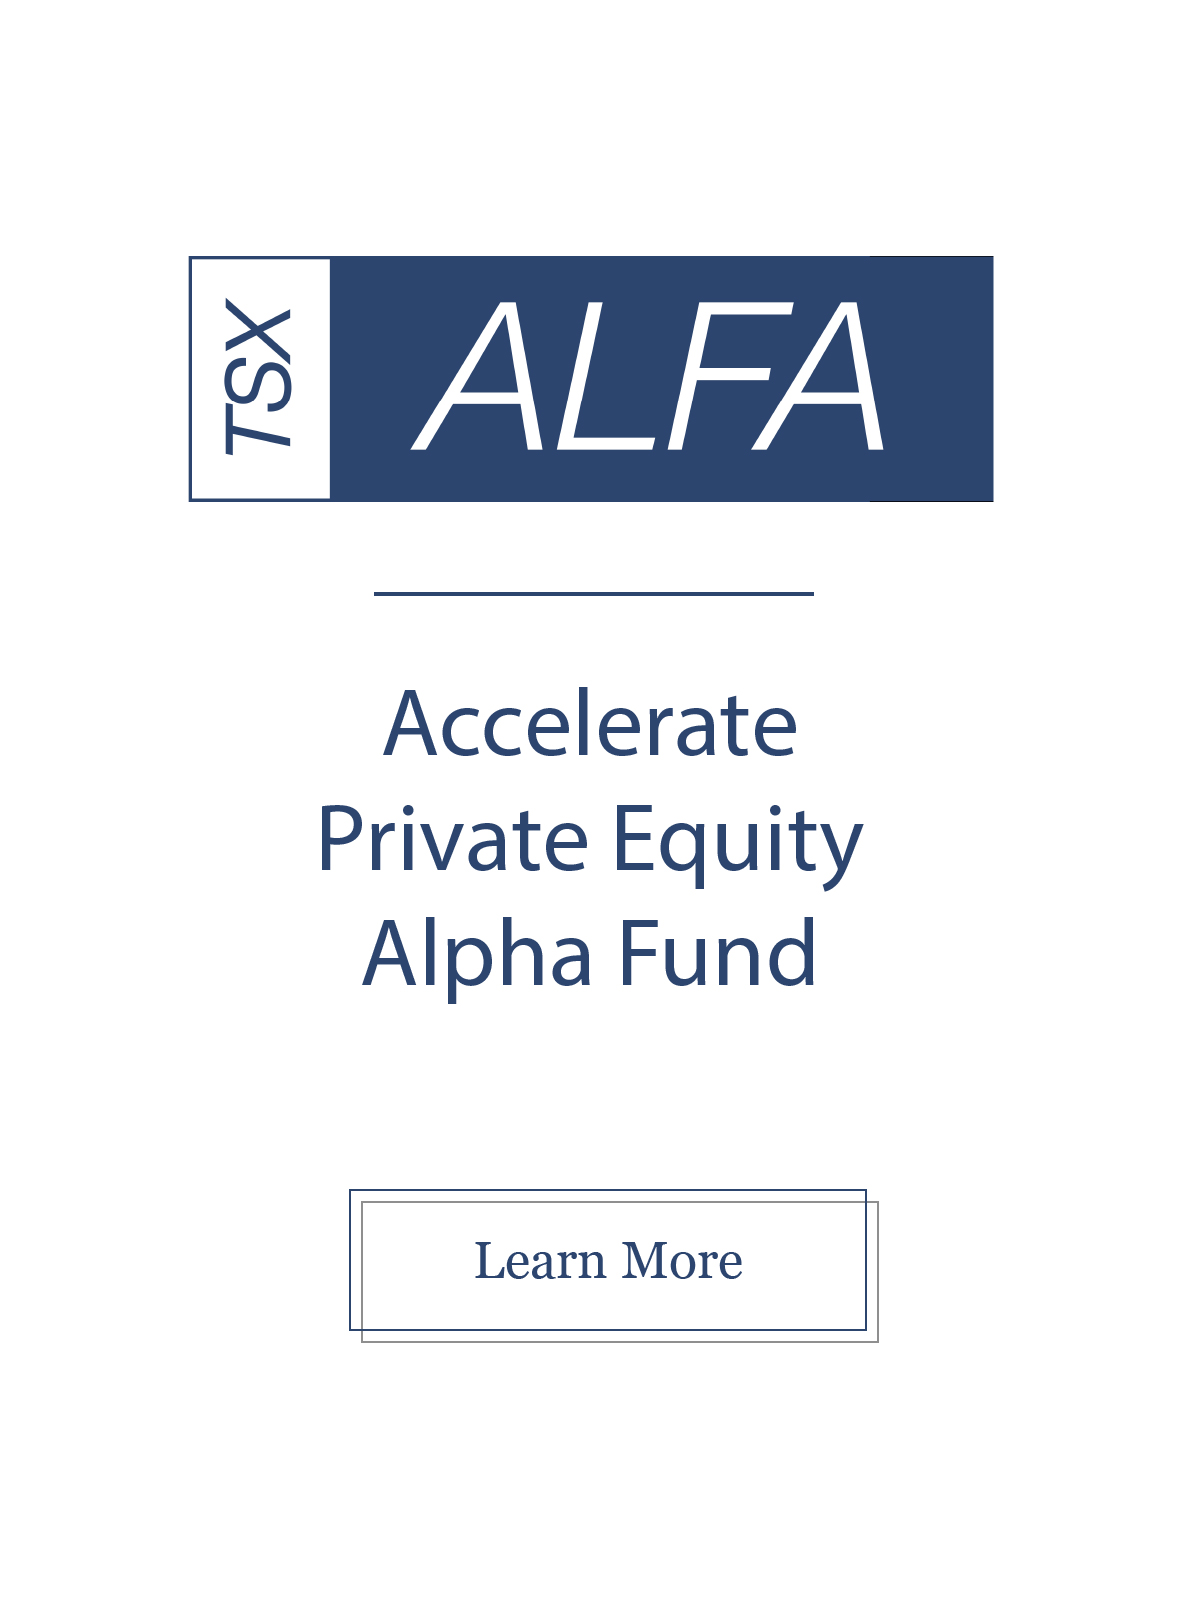 ALFA,TSX ALFA,ALFA Fund,ALFA Accelerate Fund,ALFA Fund,Accelerate,Private Equity Fund,Accelerate Shares,Accelerate